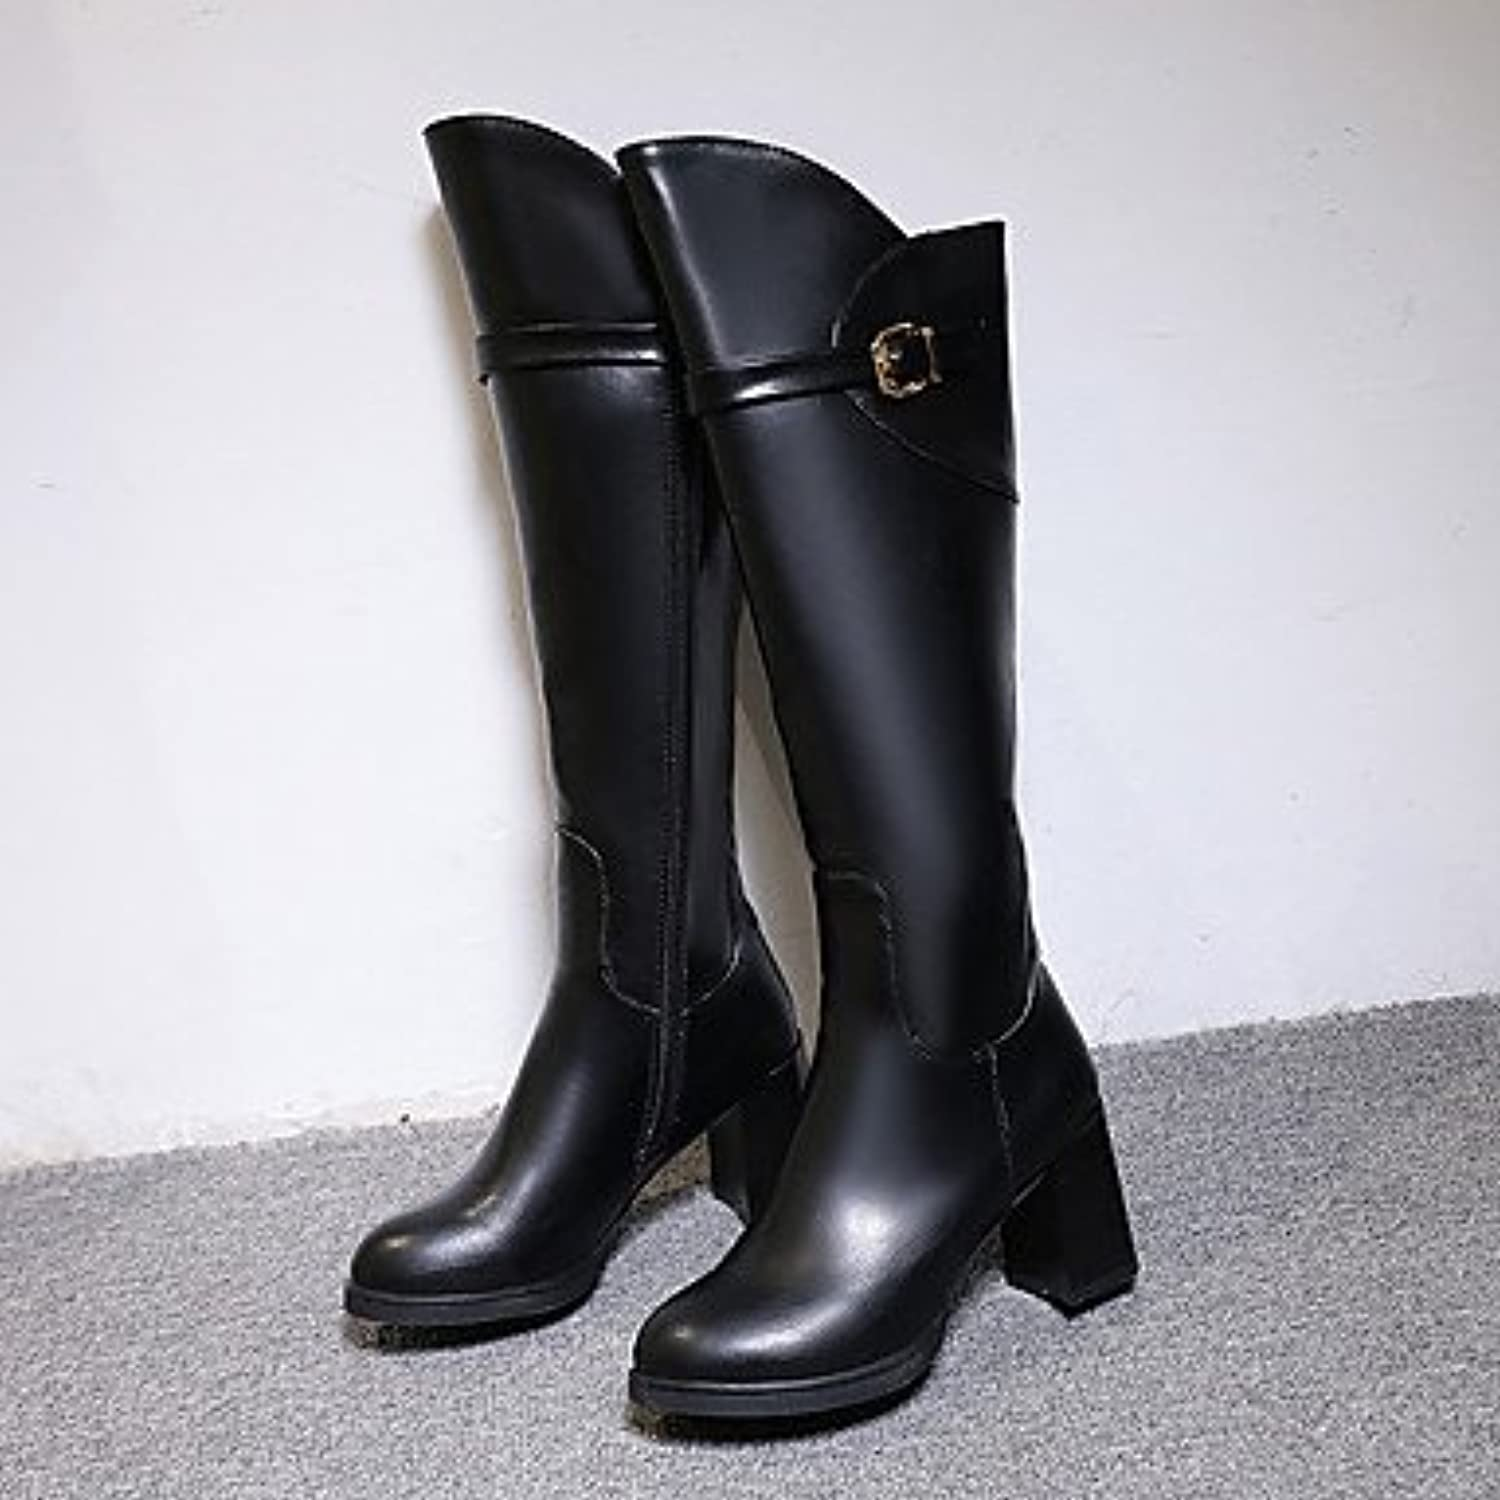 20d2acb76418 RTRY Women S Shoes Pu Fall Fall Fall Winter Comfort Boots Low Heel Knee  High Boots For Casual Black B0784T6PCW Parent 590e4c